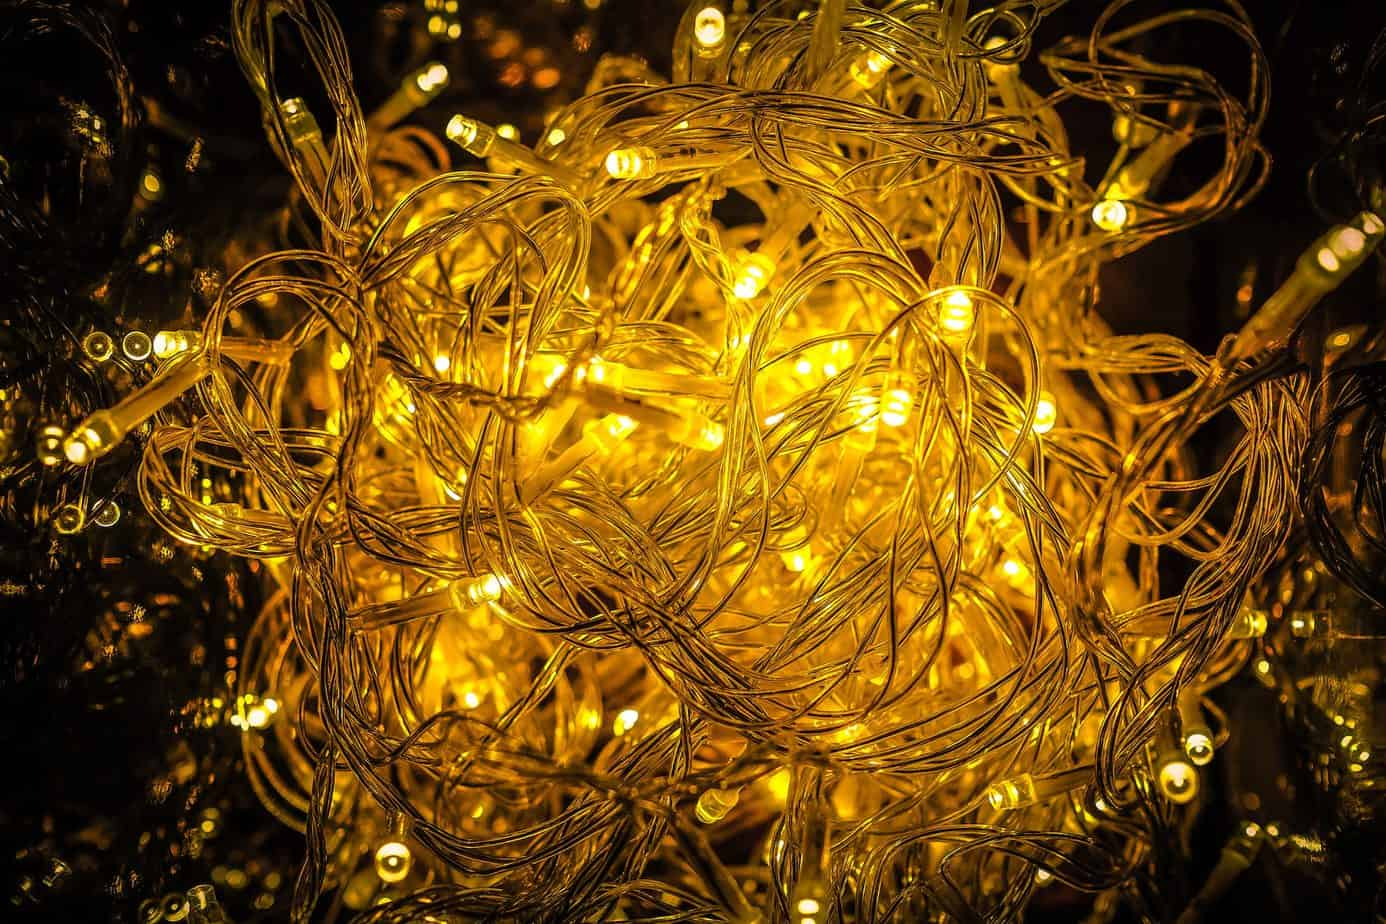 Behavior Cues of Sensory Overload During the Holidays